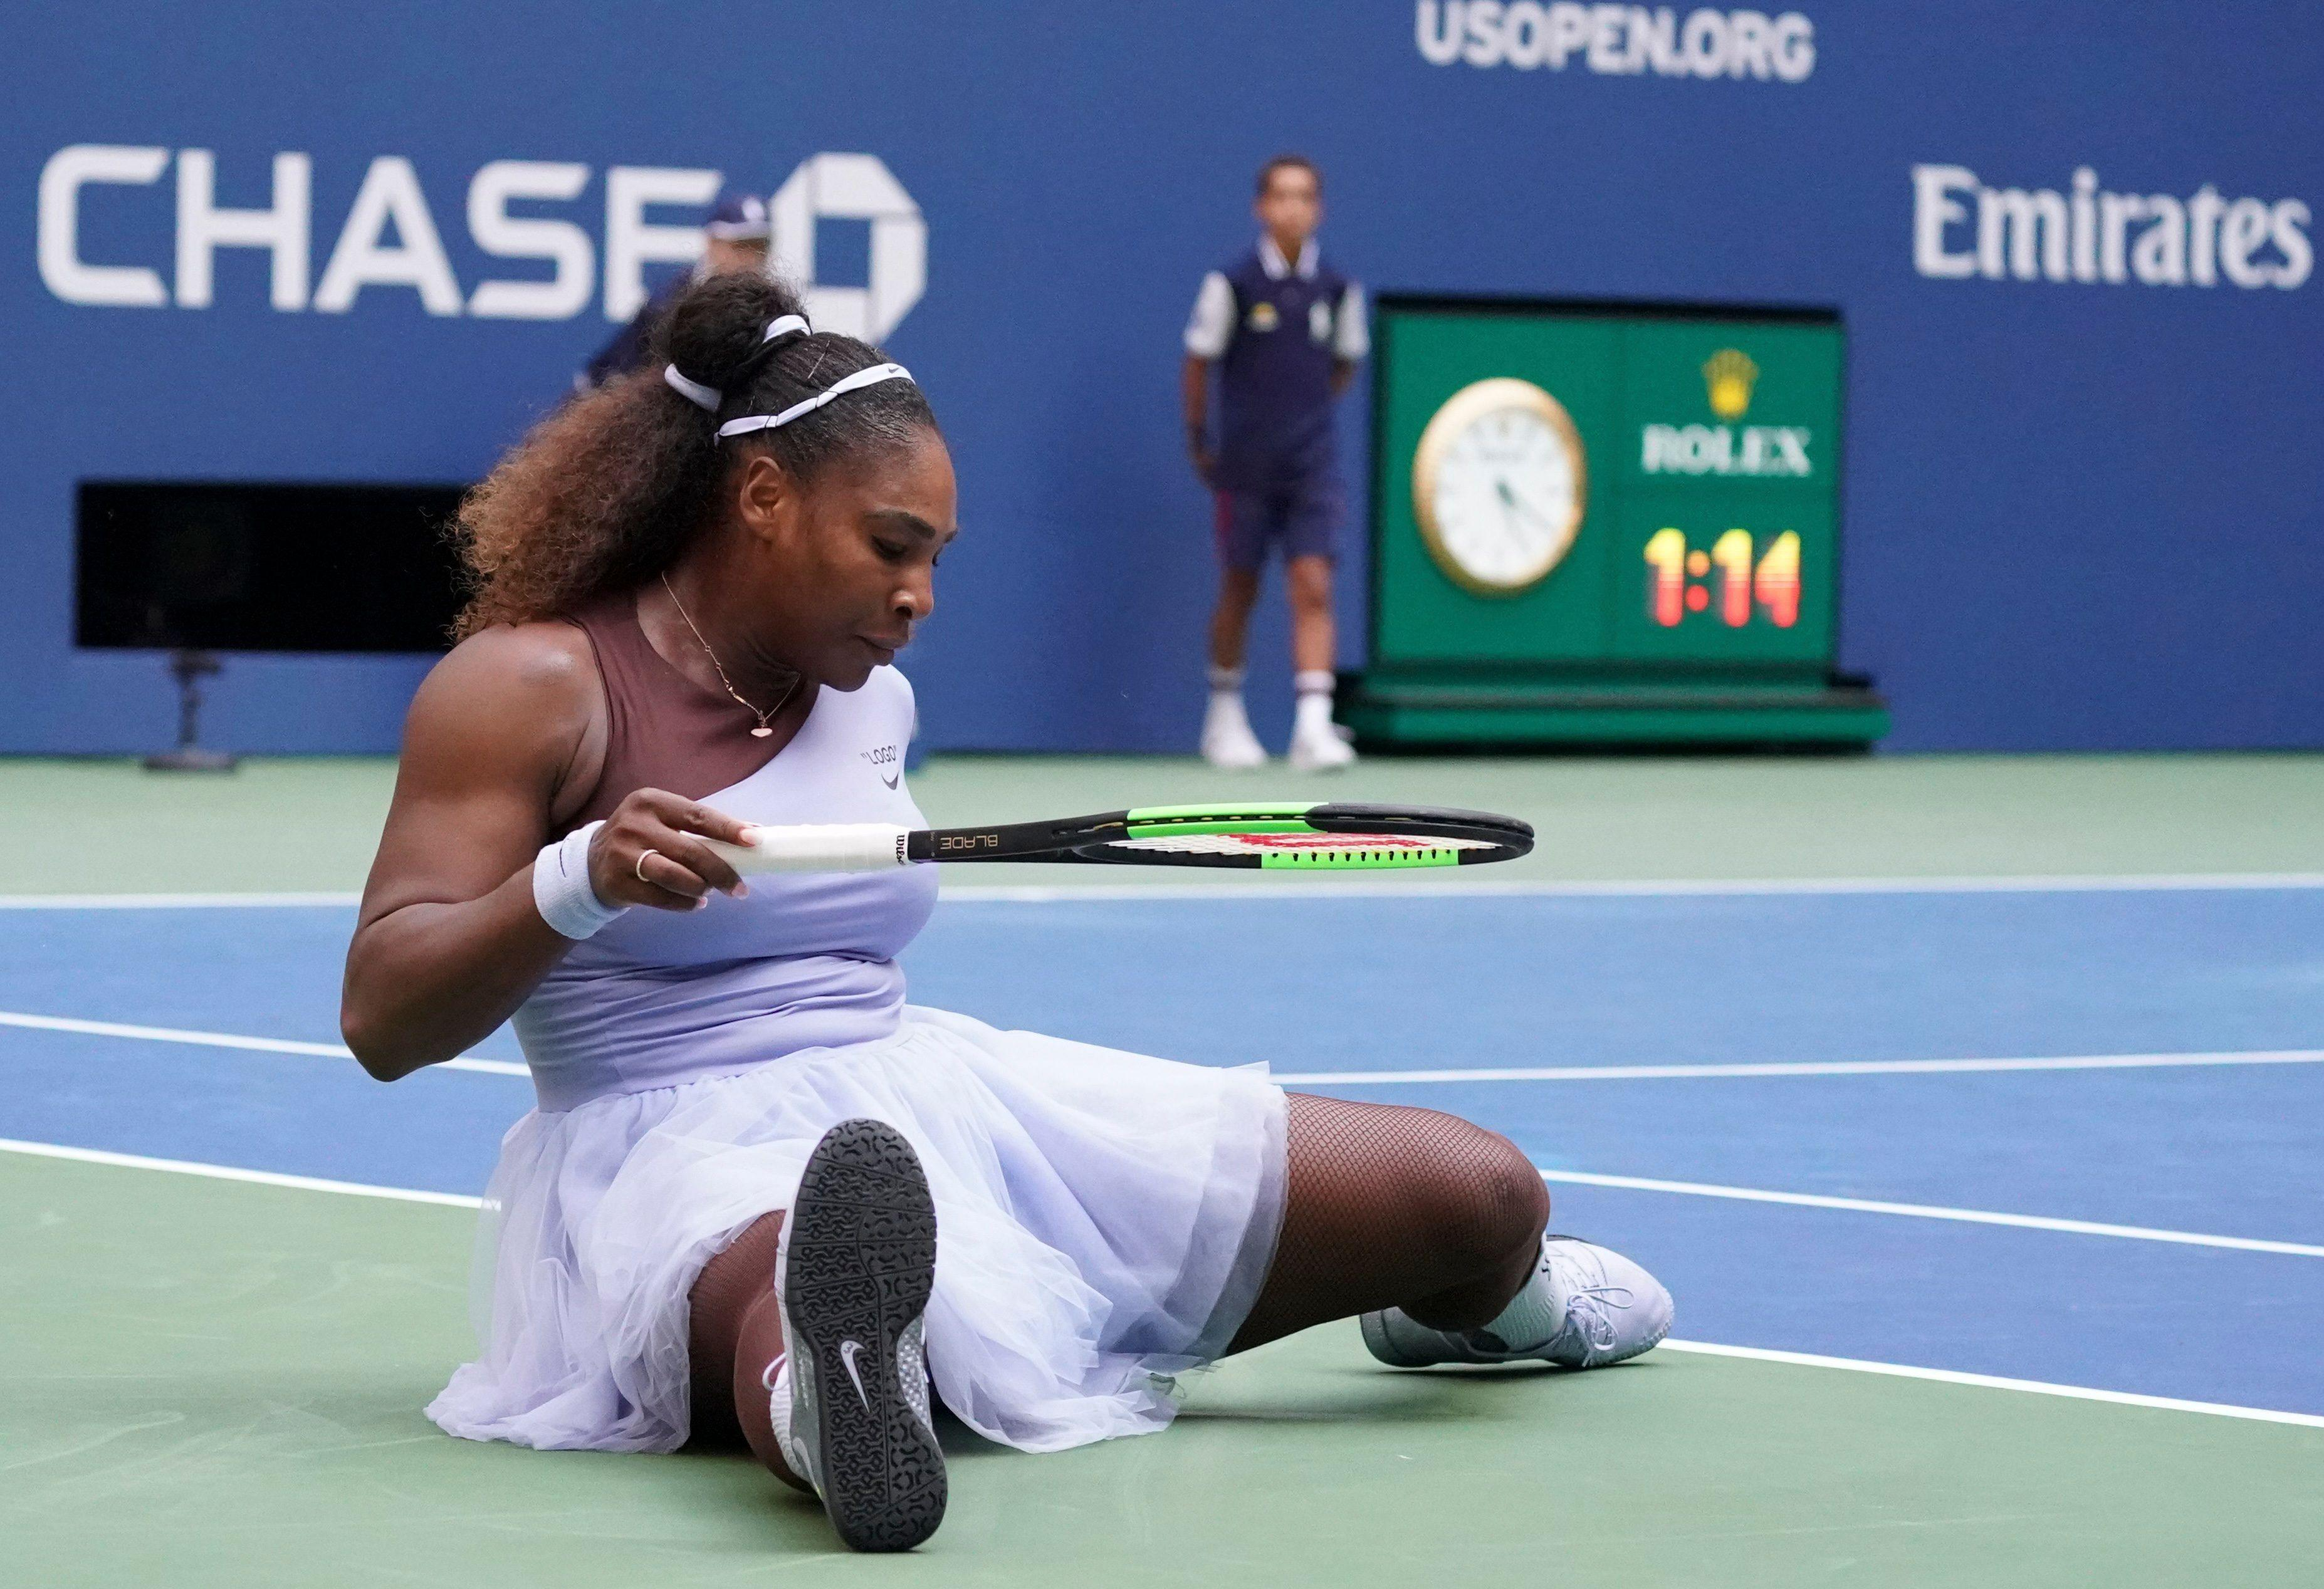 Serena did not have it all her own way and Kanepi fought back to take the second set